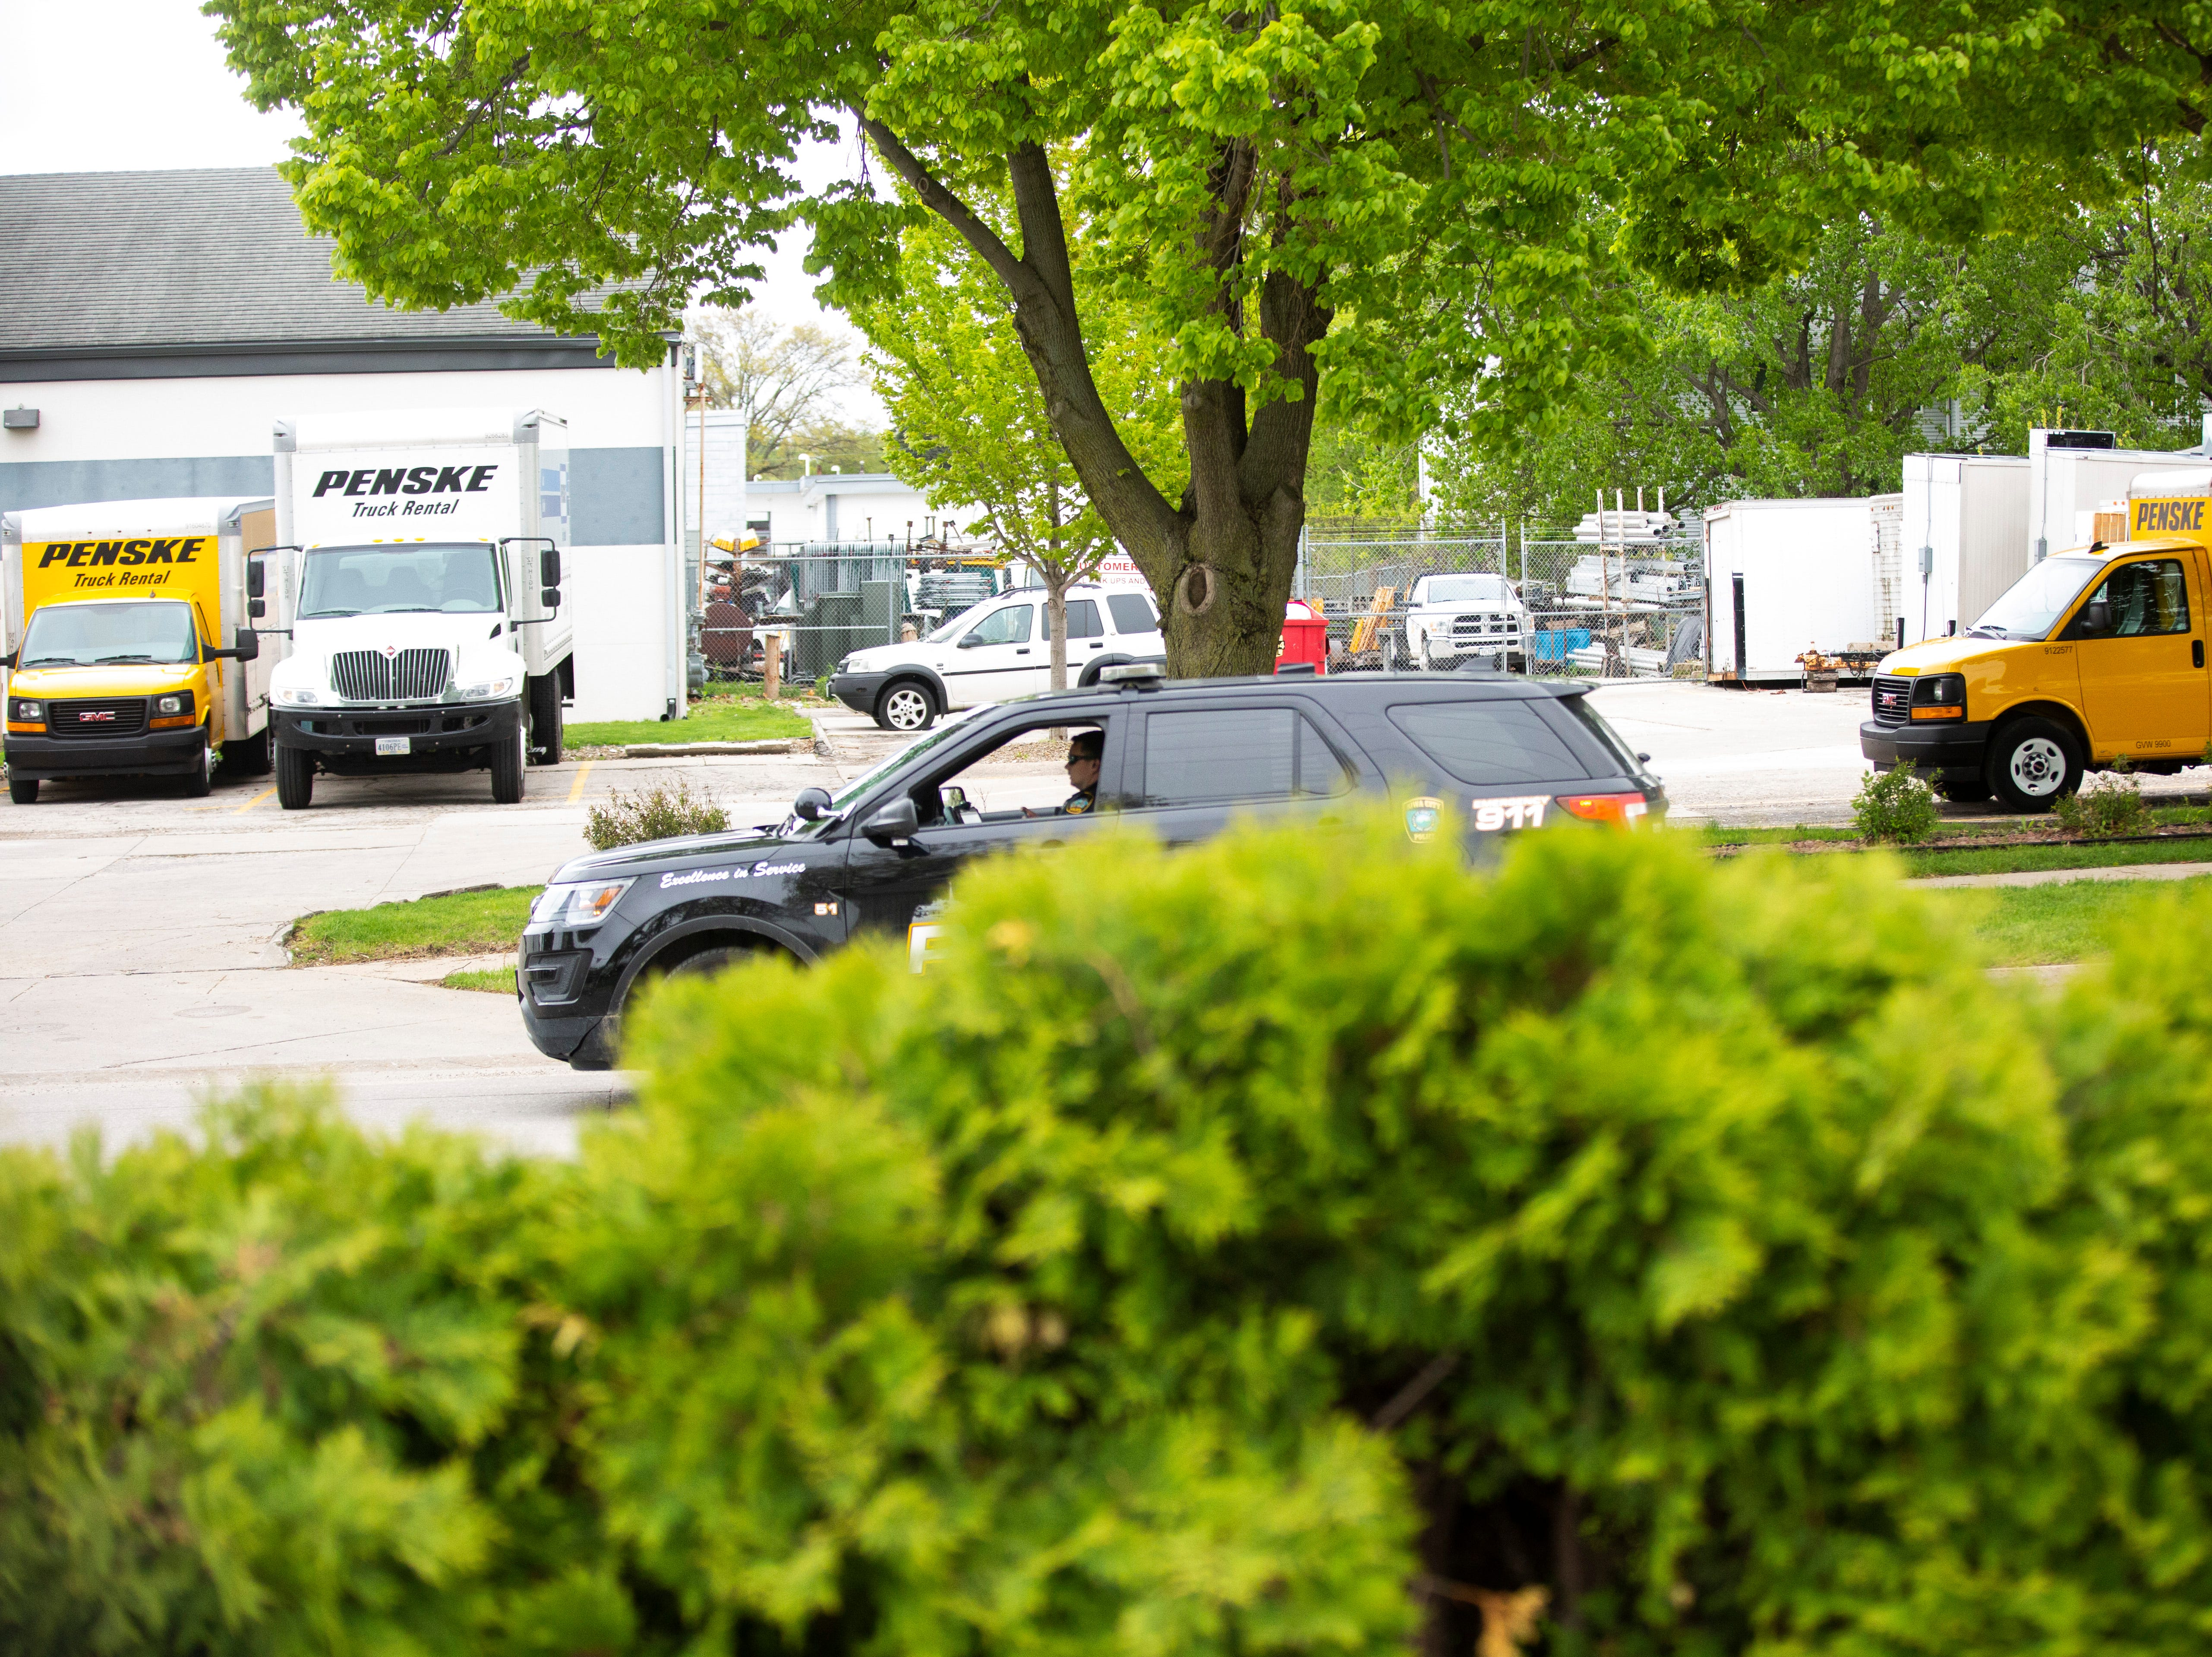 An Iowa City Police car drives past the parking lot where Penske vehicles are parked, Thursday, May 9, 2019, in front of Big Ten Rentals, south of Highway 6 in Iowa City, Iowa.